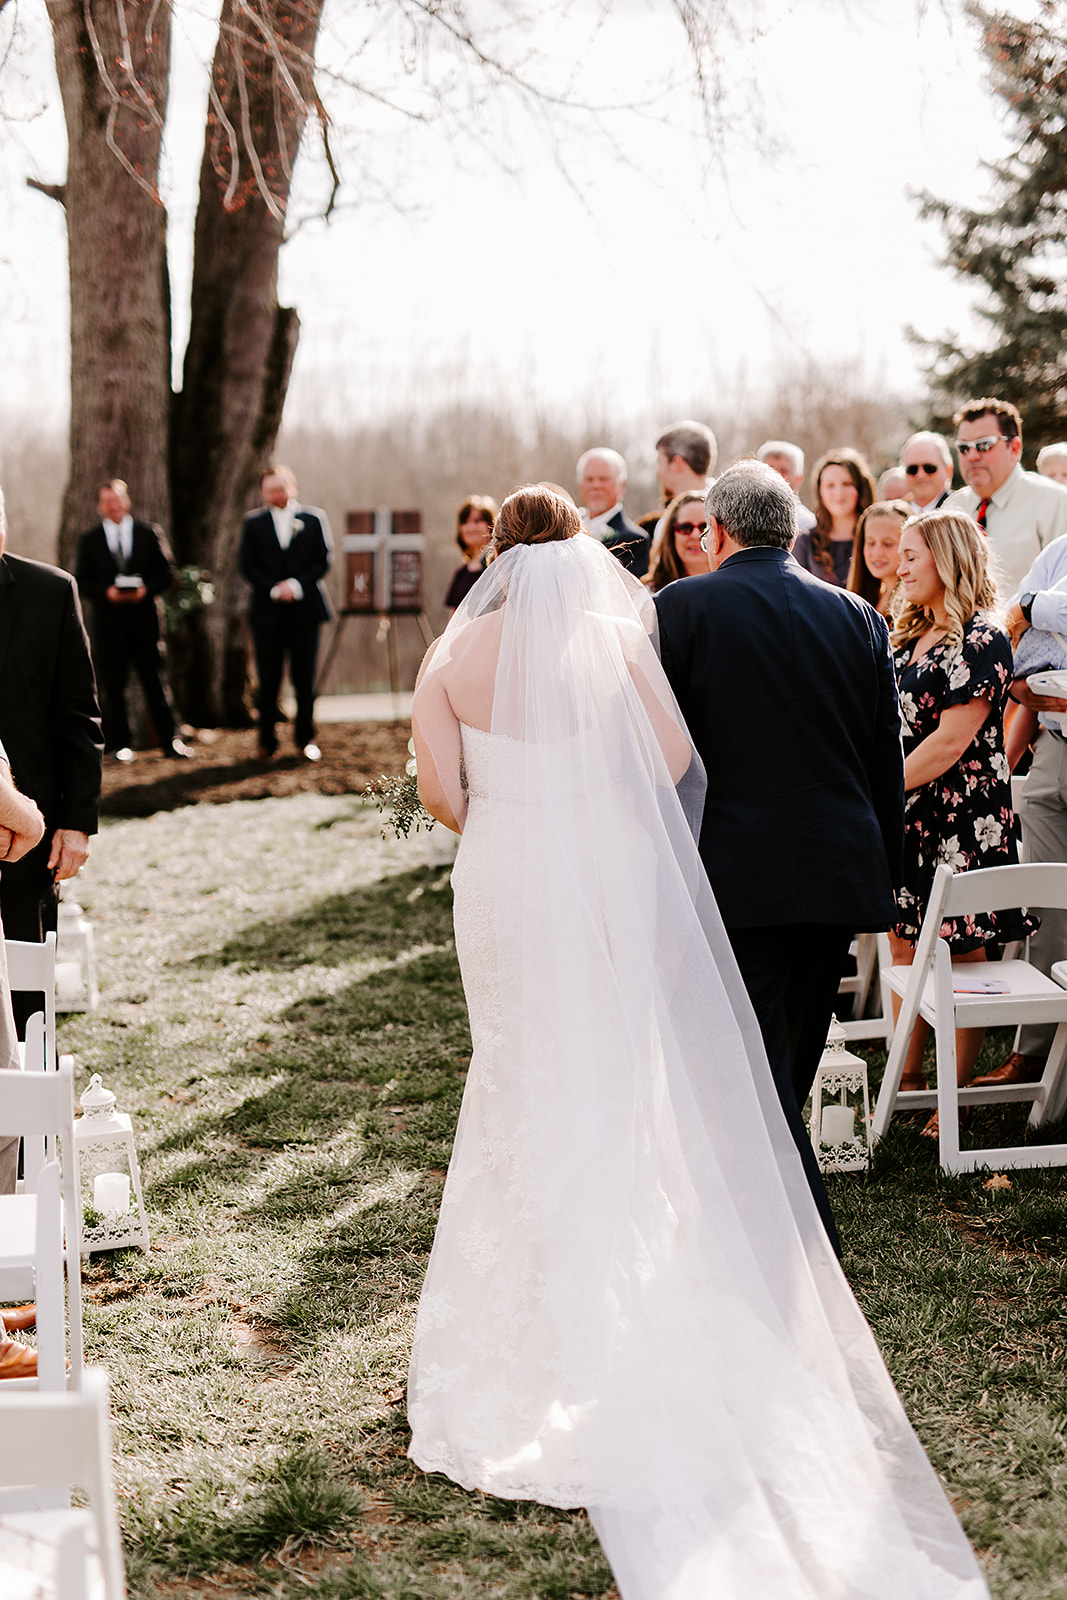 Lauren_and_Andrew_Mustard_Seed_Gardens_Noblesville_Indiana_by_Emily_Wehner_Photography-508.jpg